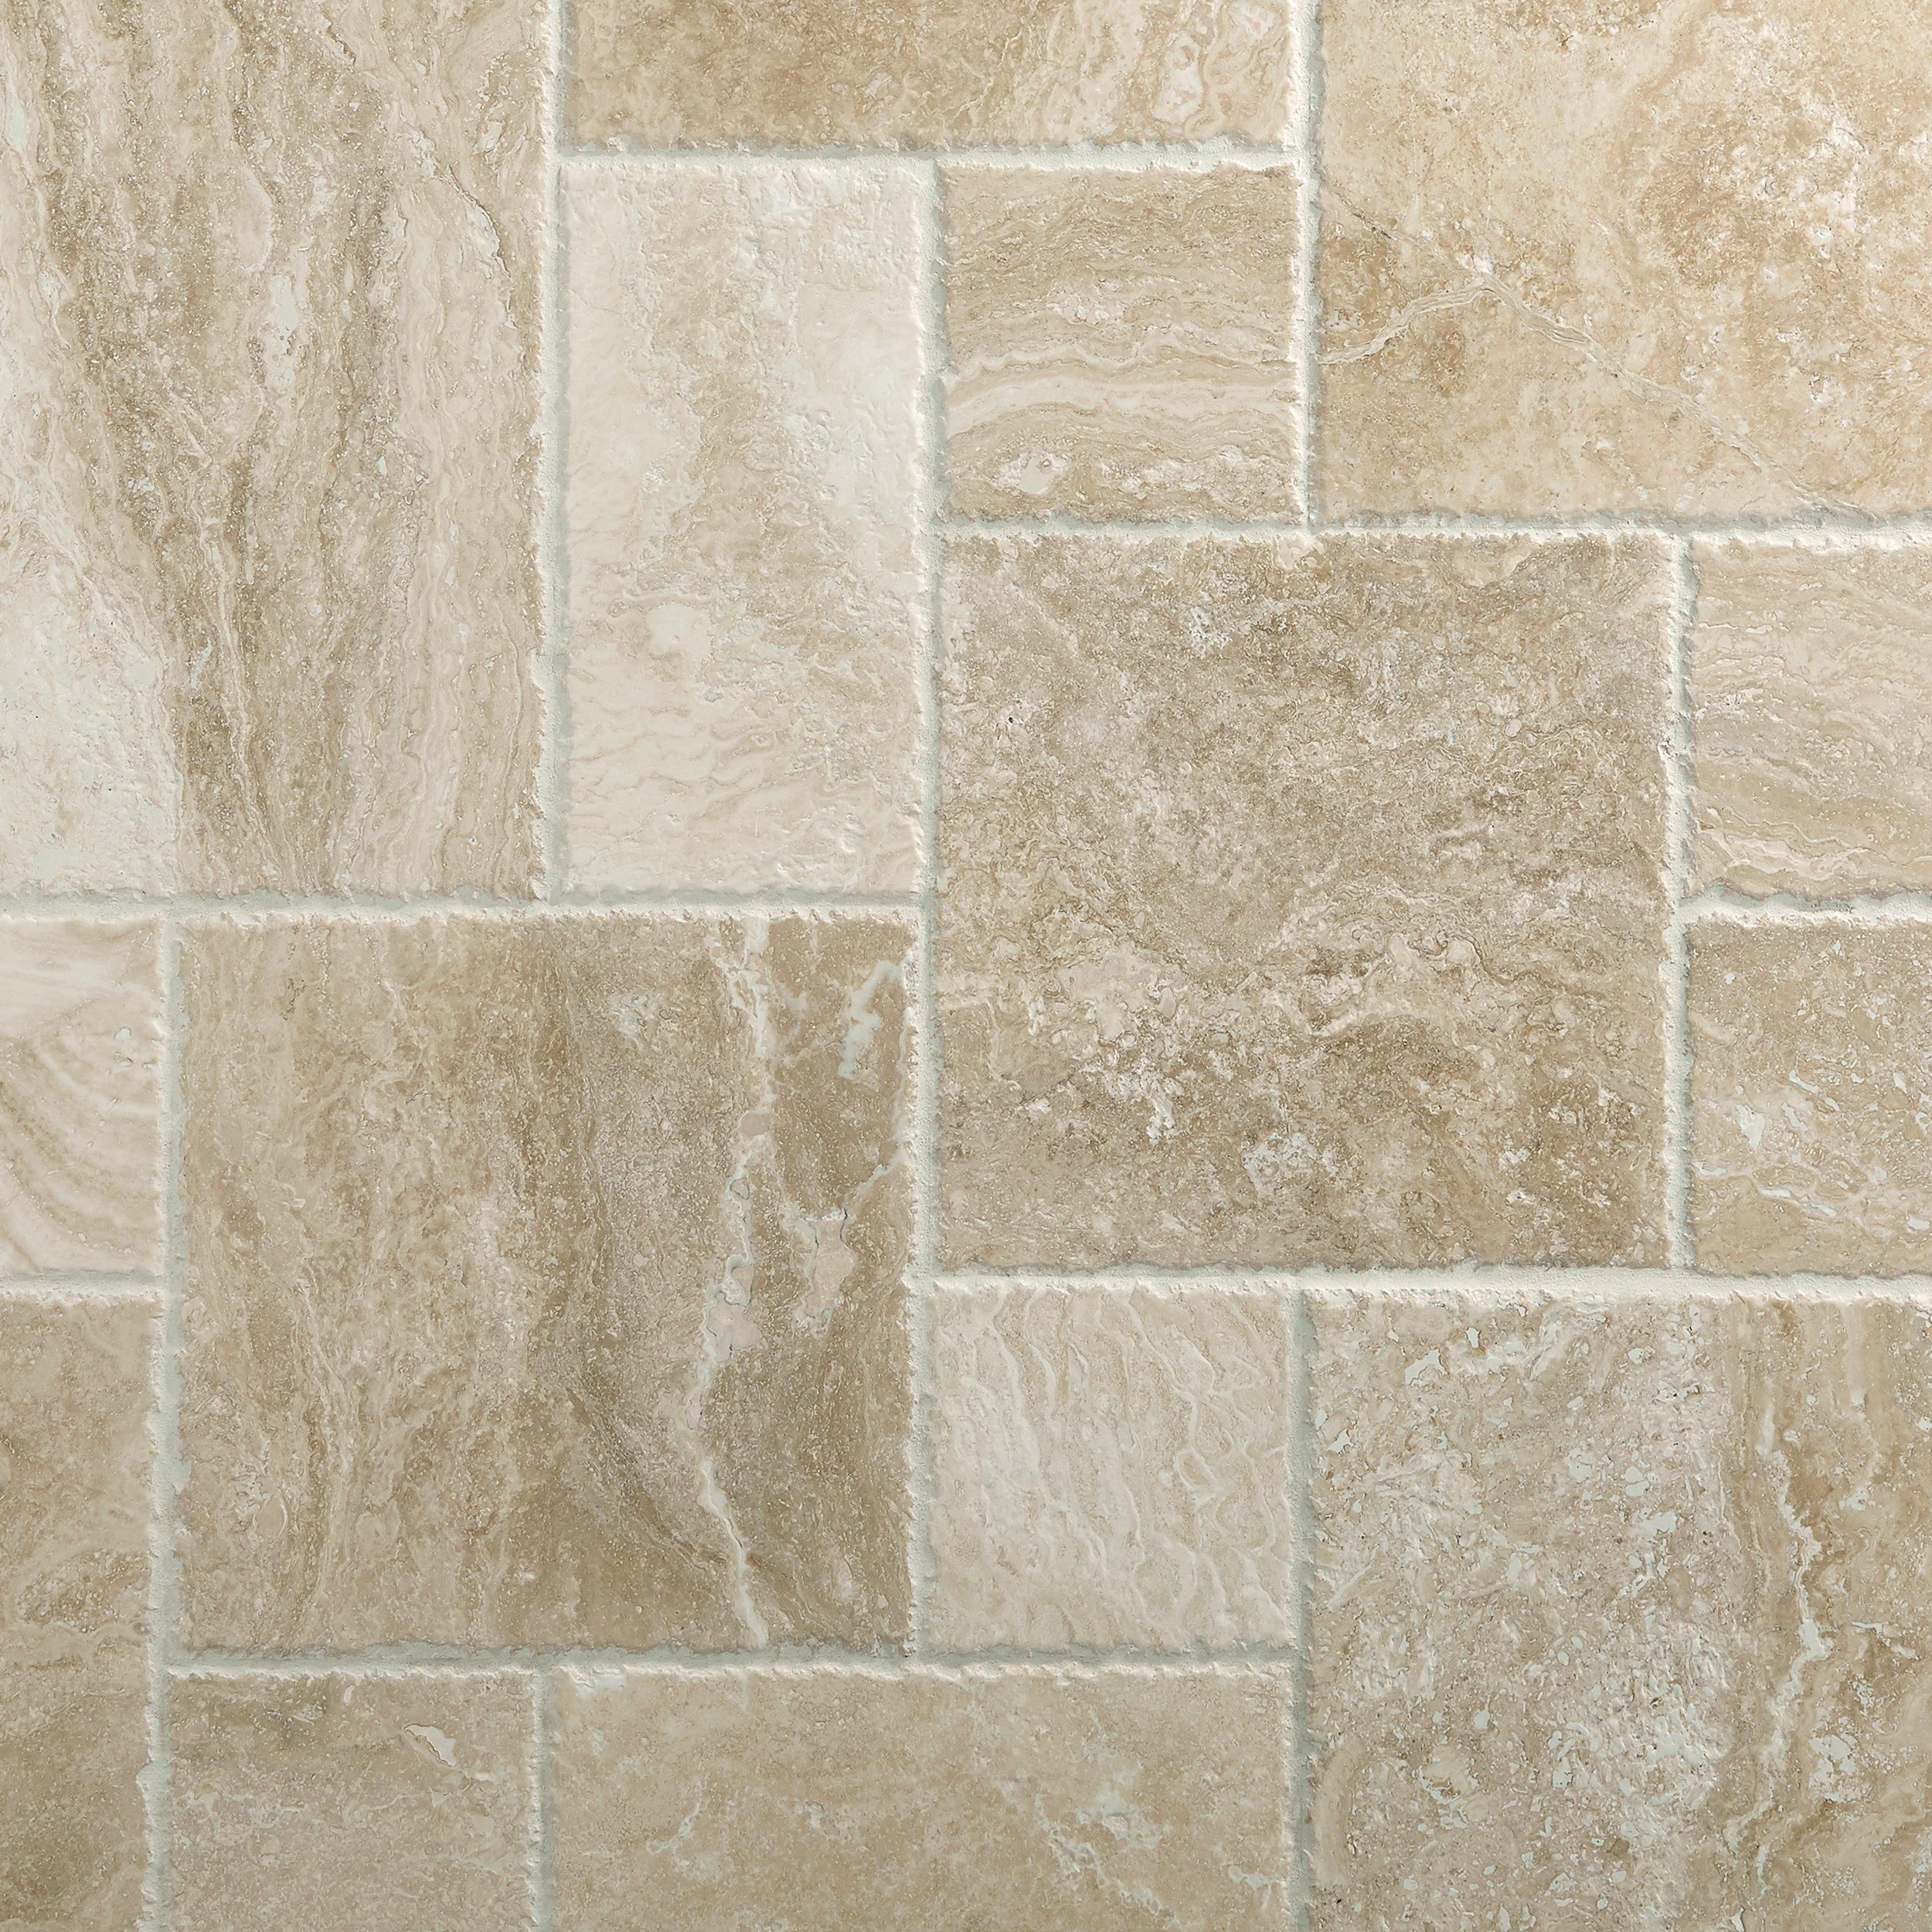 Cascade Cream Brushed Travertine Tile Floor Decor Travertine Floor Tile Travertine Tile Travertine Bathroom